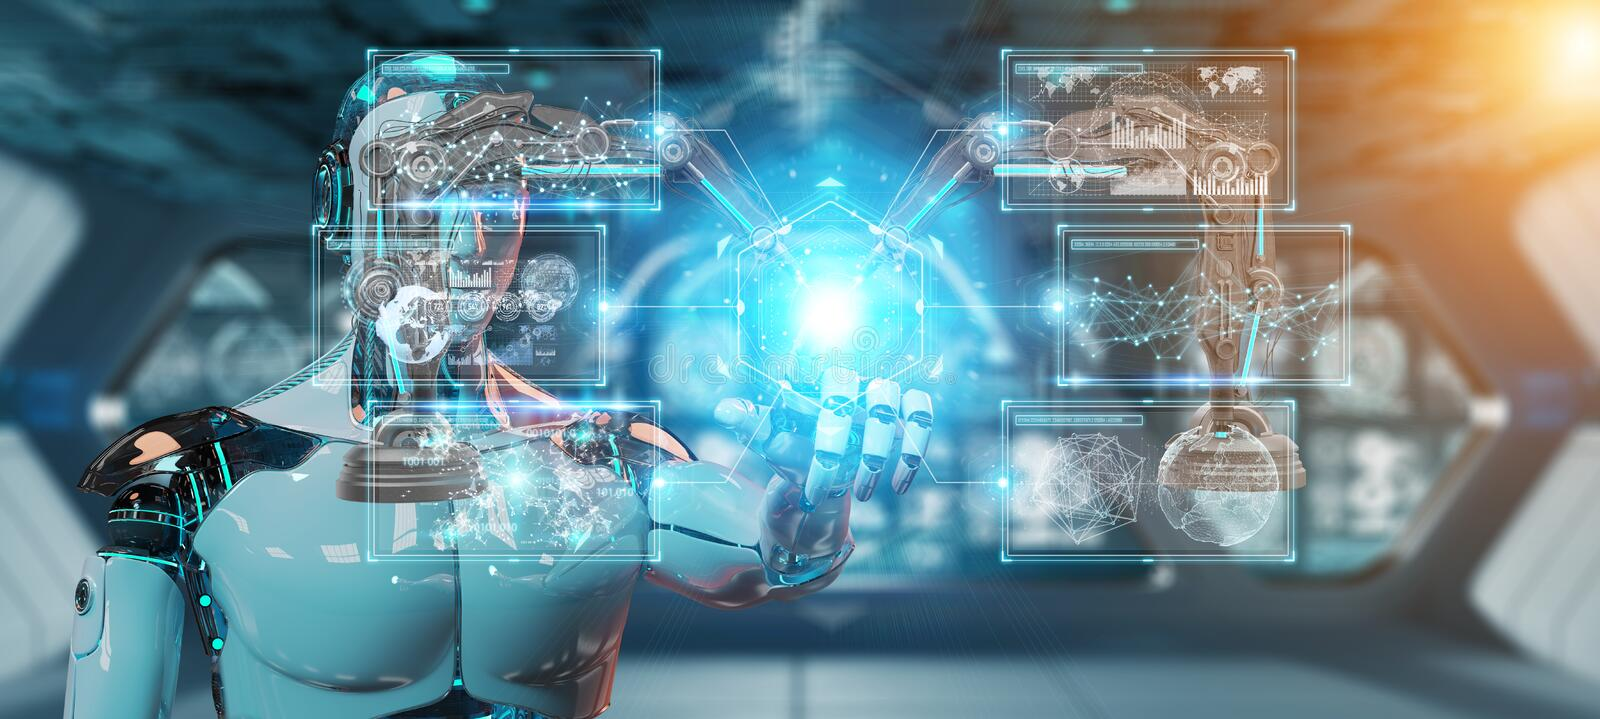 White man robot using robotics arms with digital screen 3D rendering vector illustration